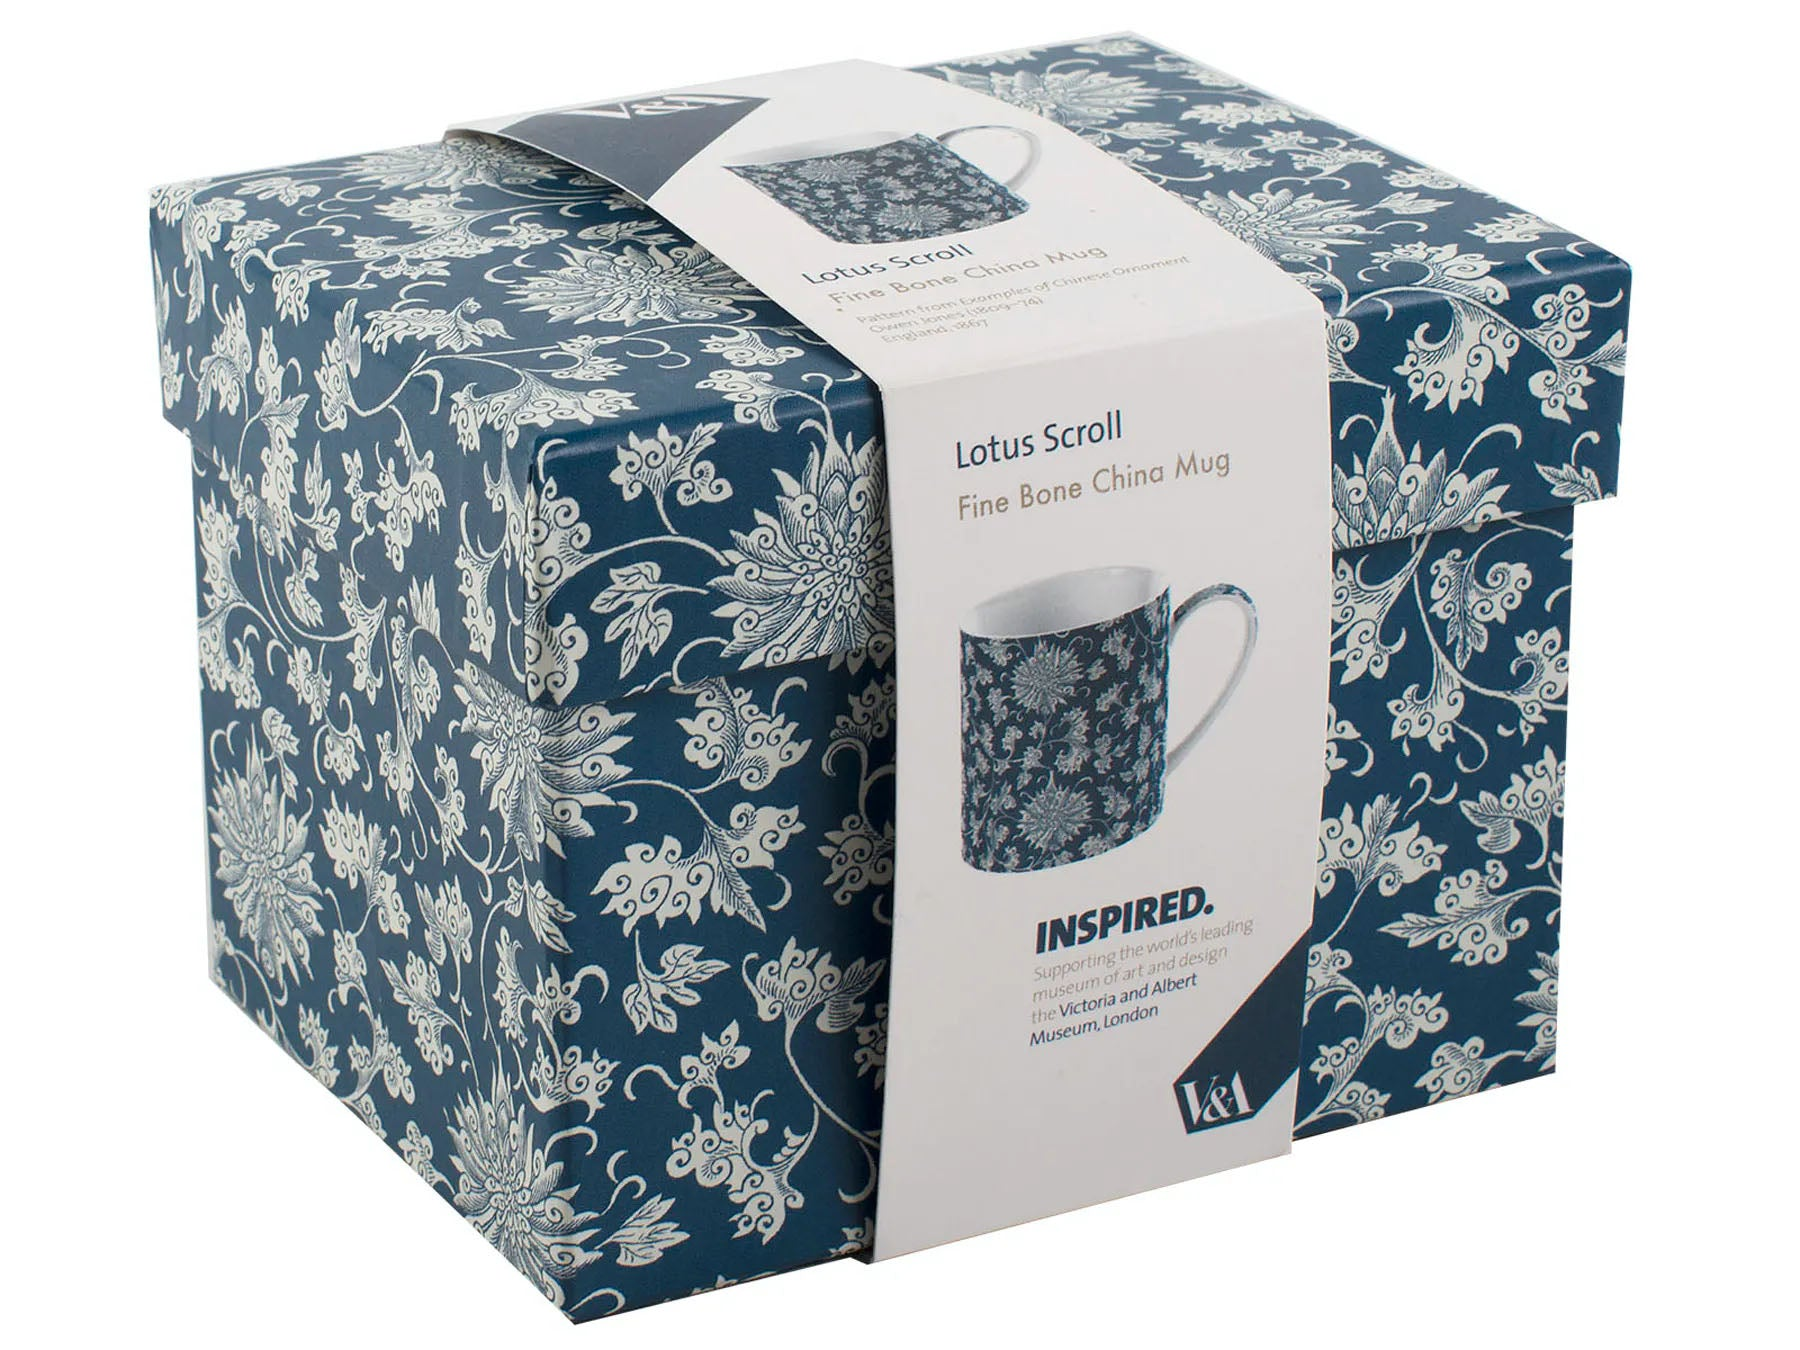 V&A Owen Jones Lotus Scroll Gift Boxed Mug